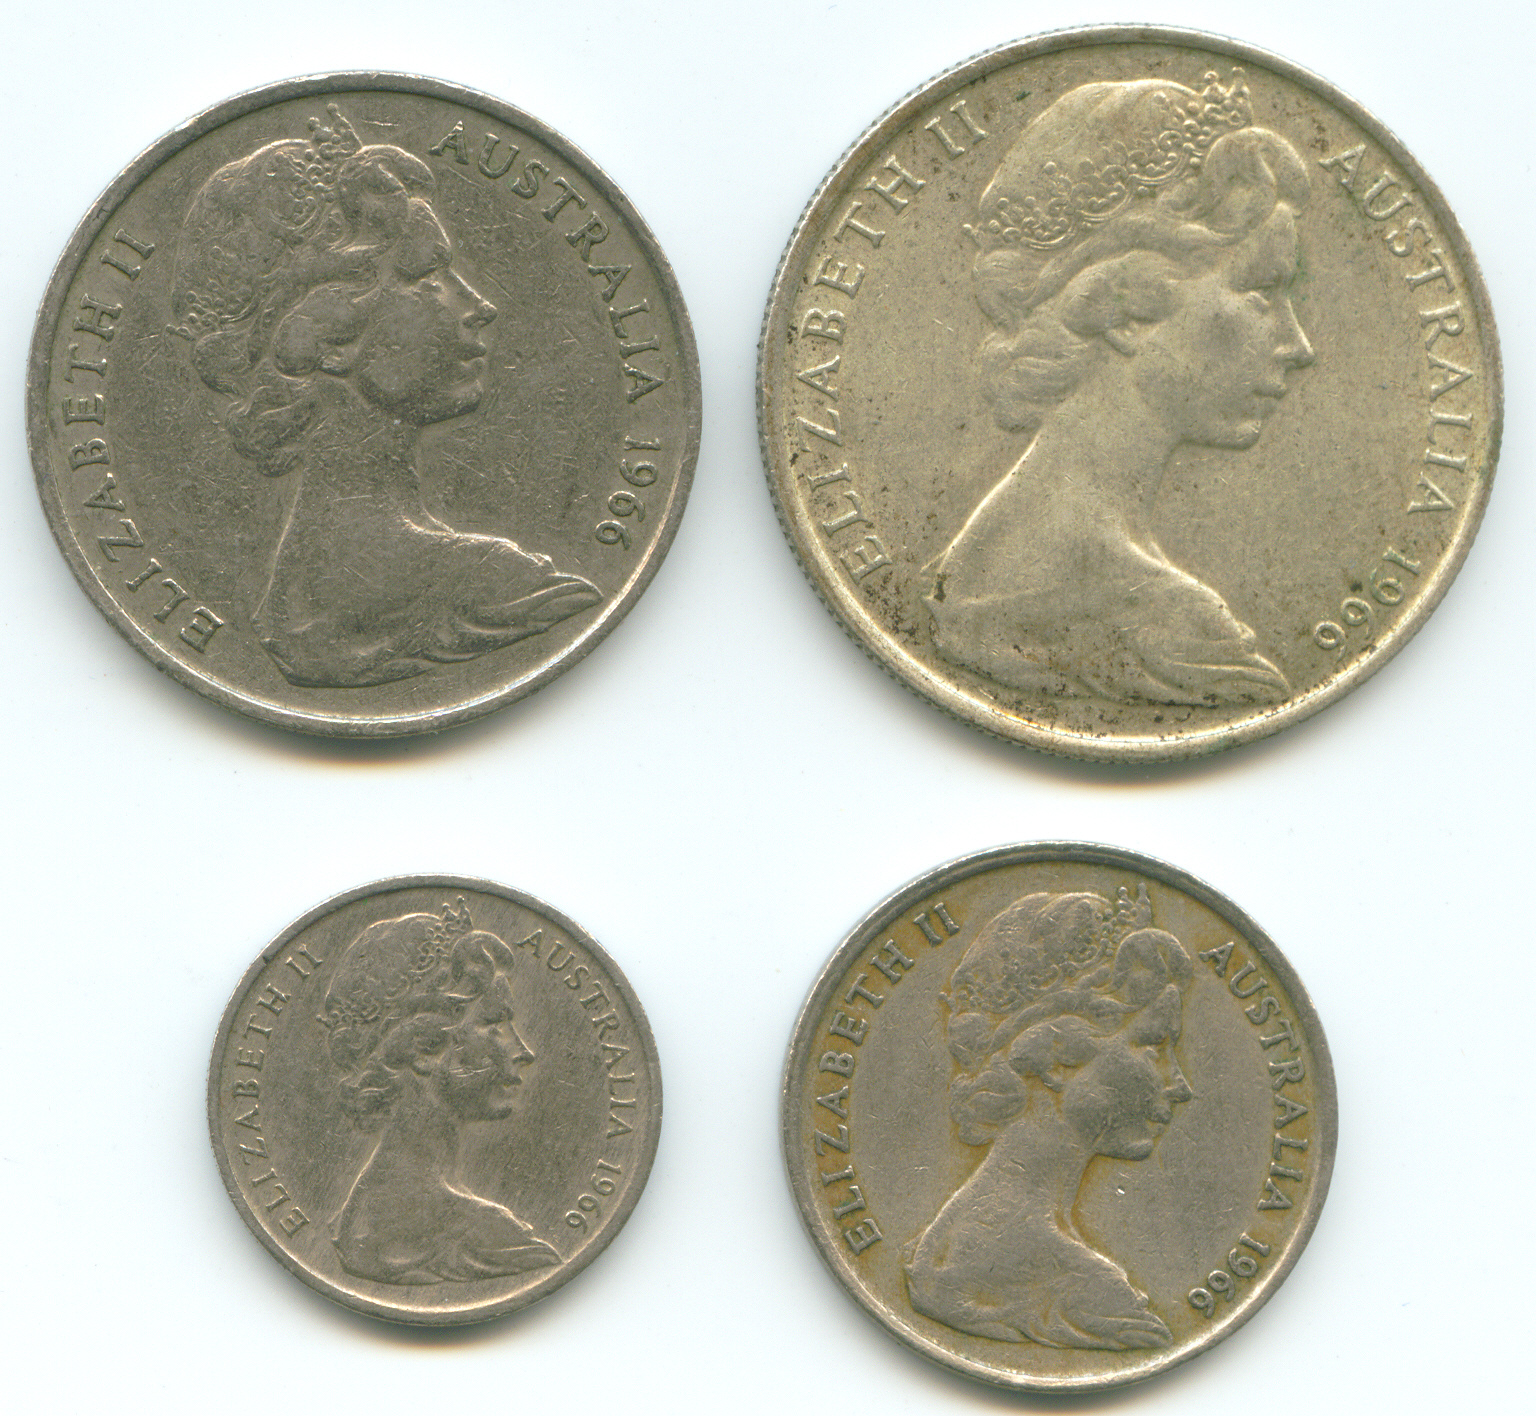 Queen Elizabeth Coin Values